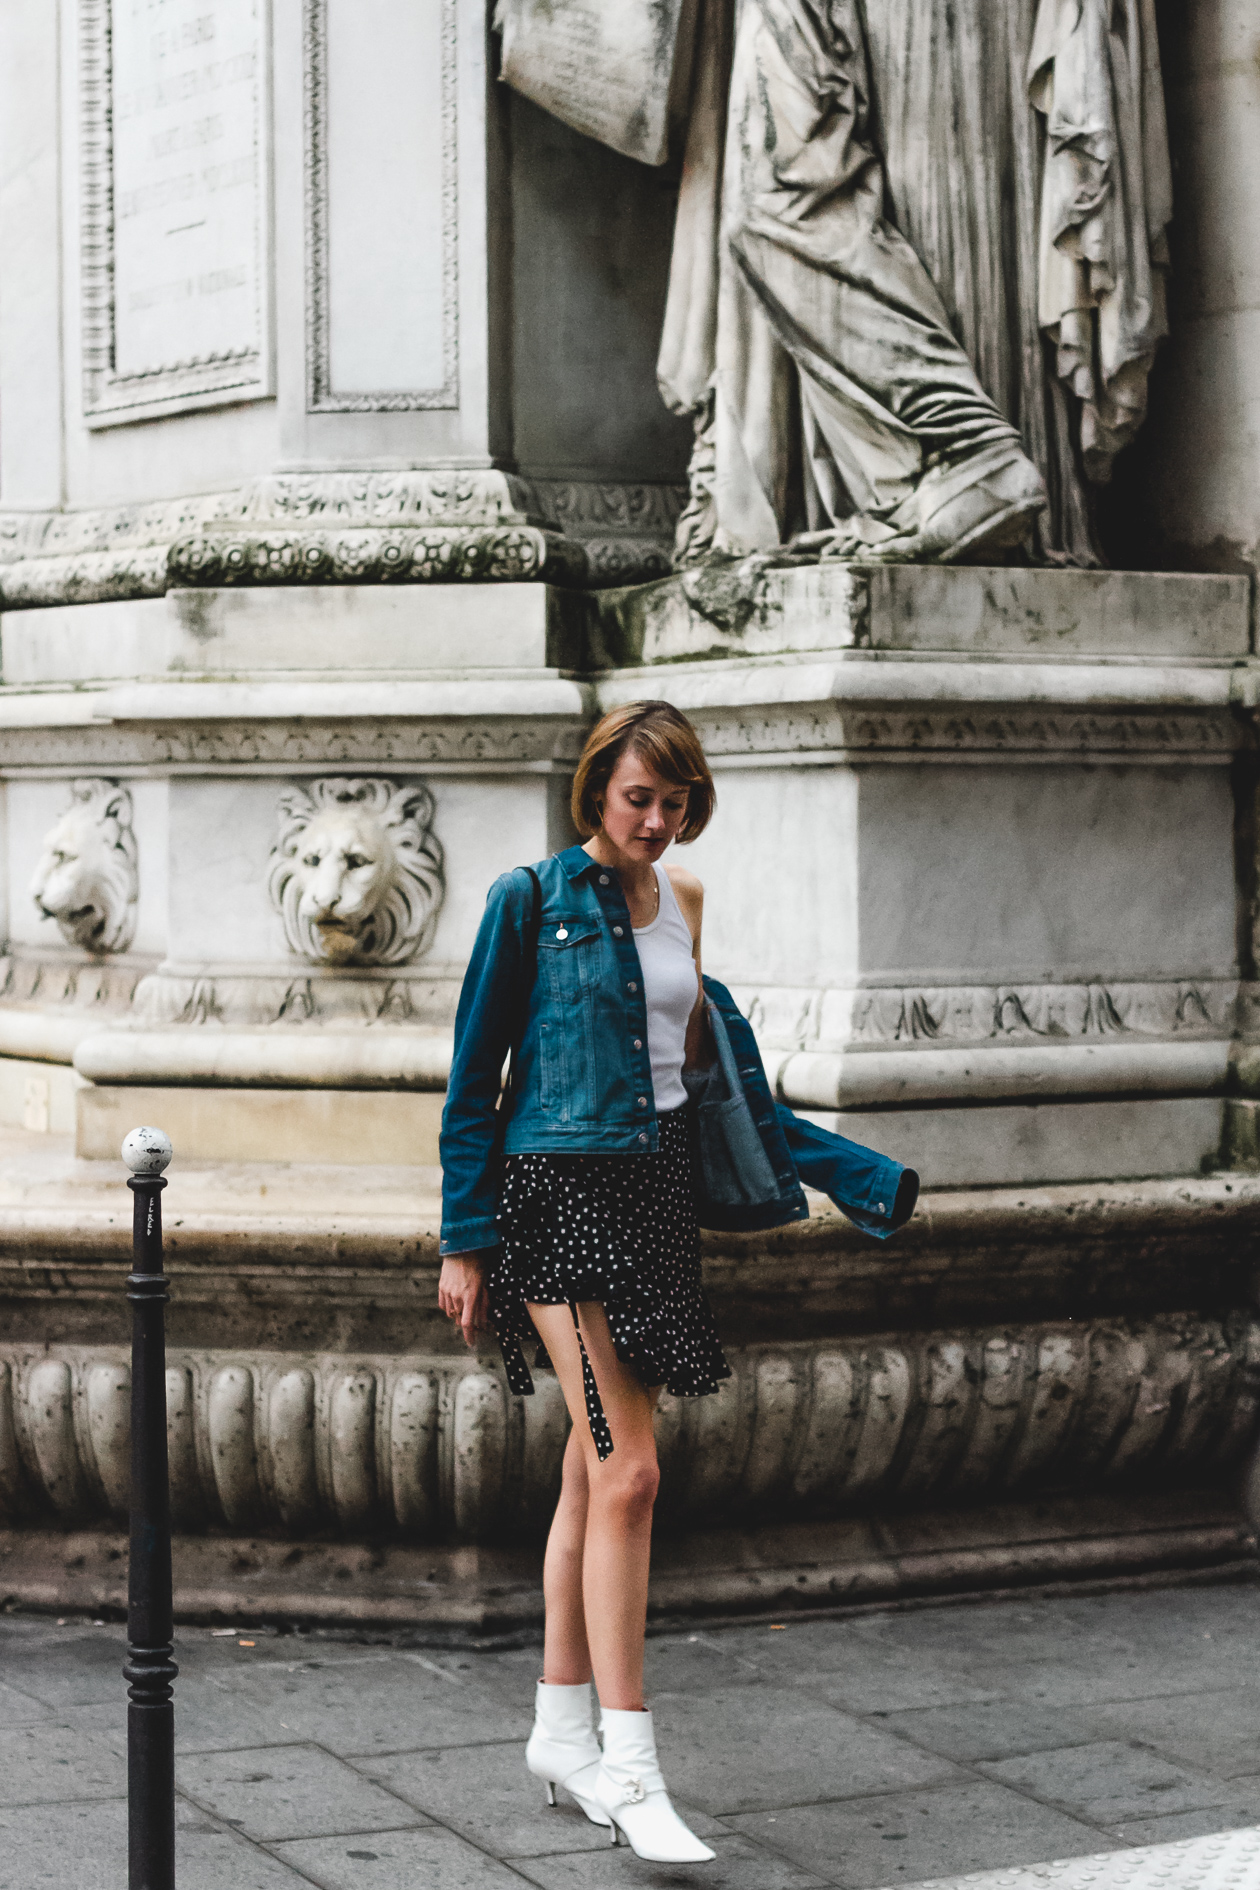 denim jacket and ruffled polka dot skirt